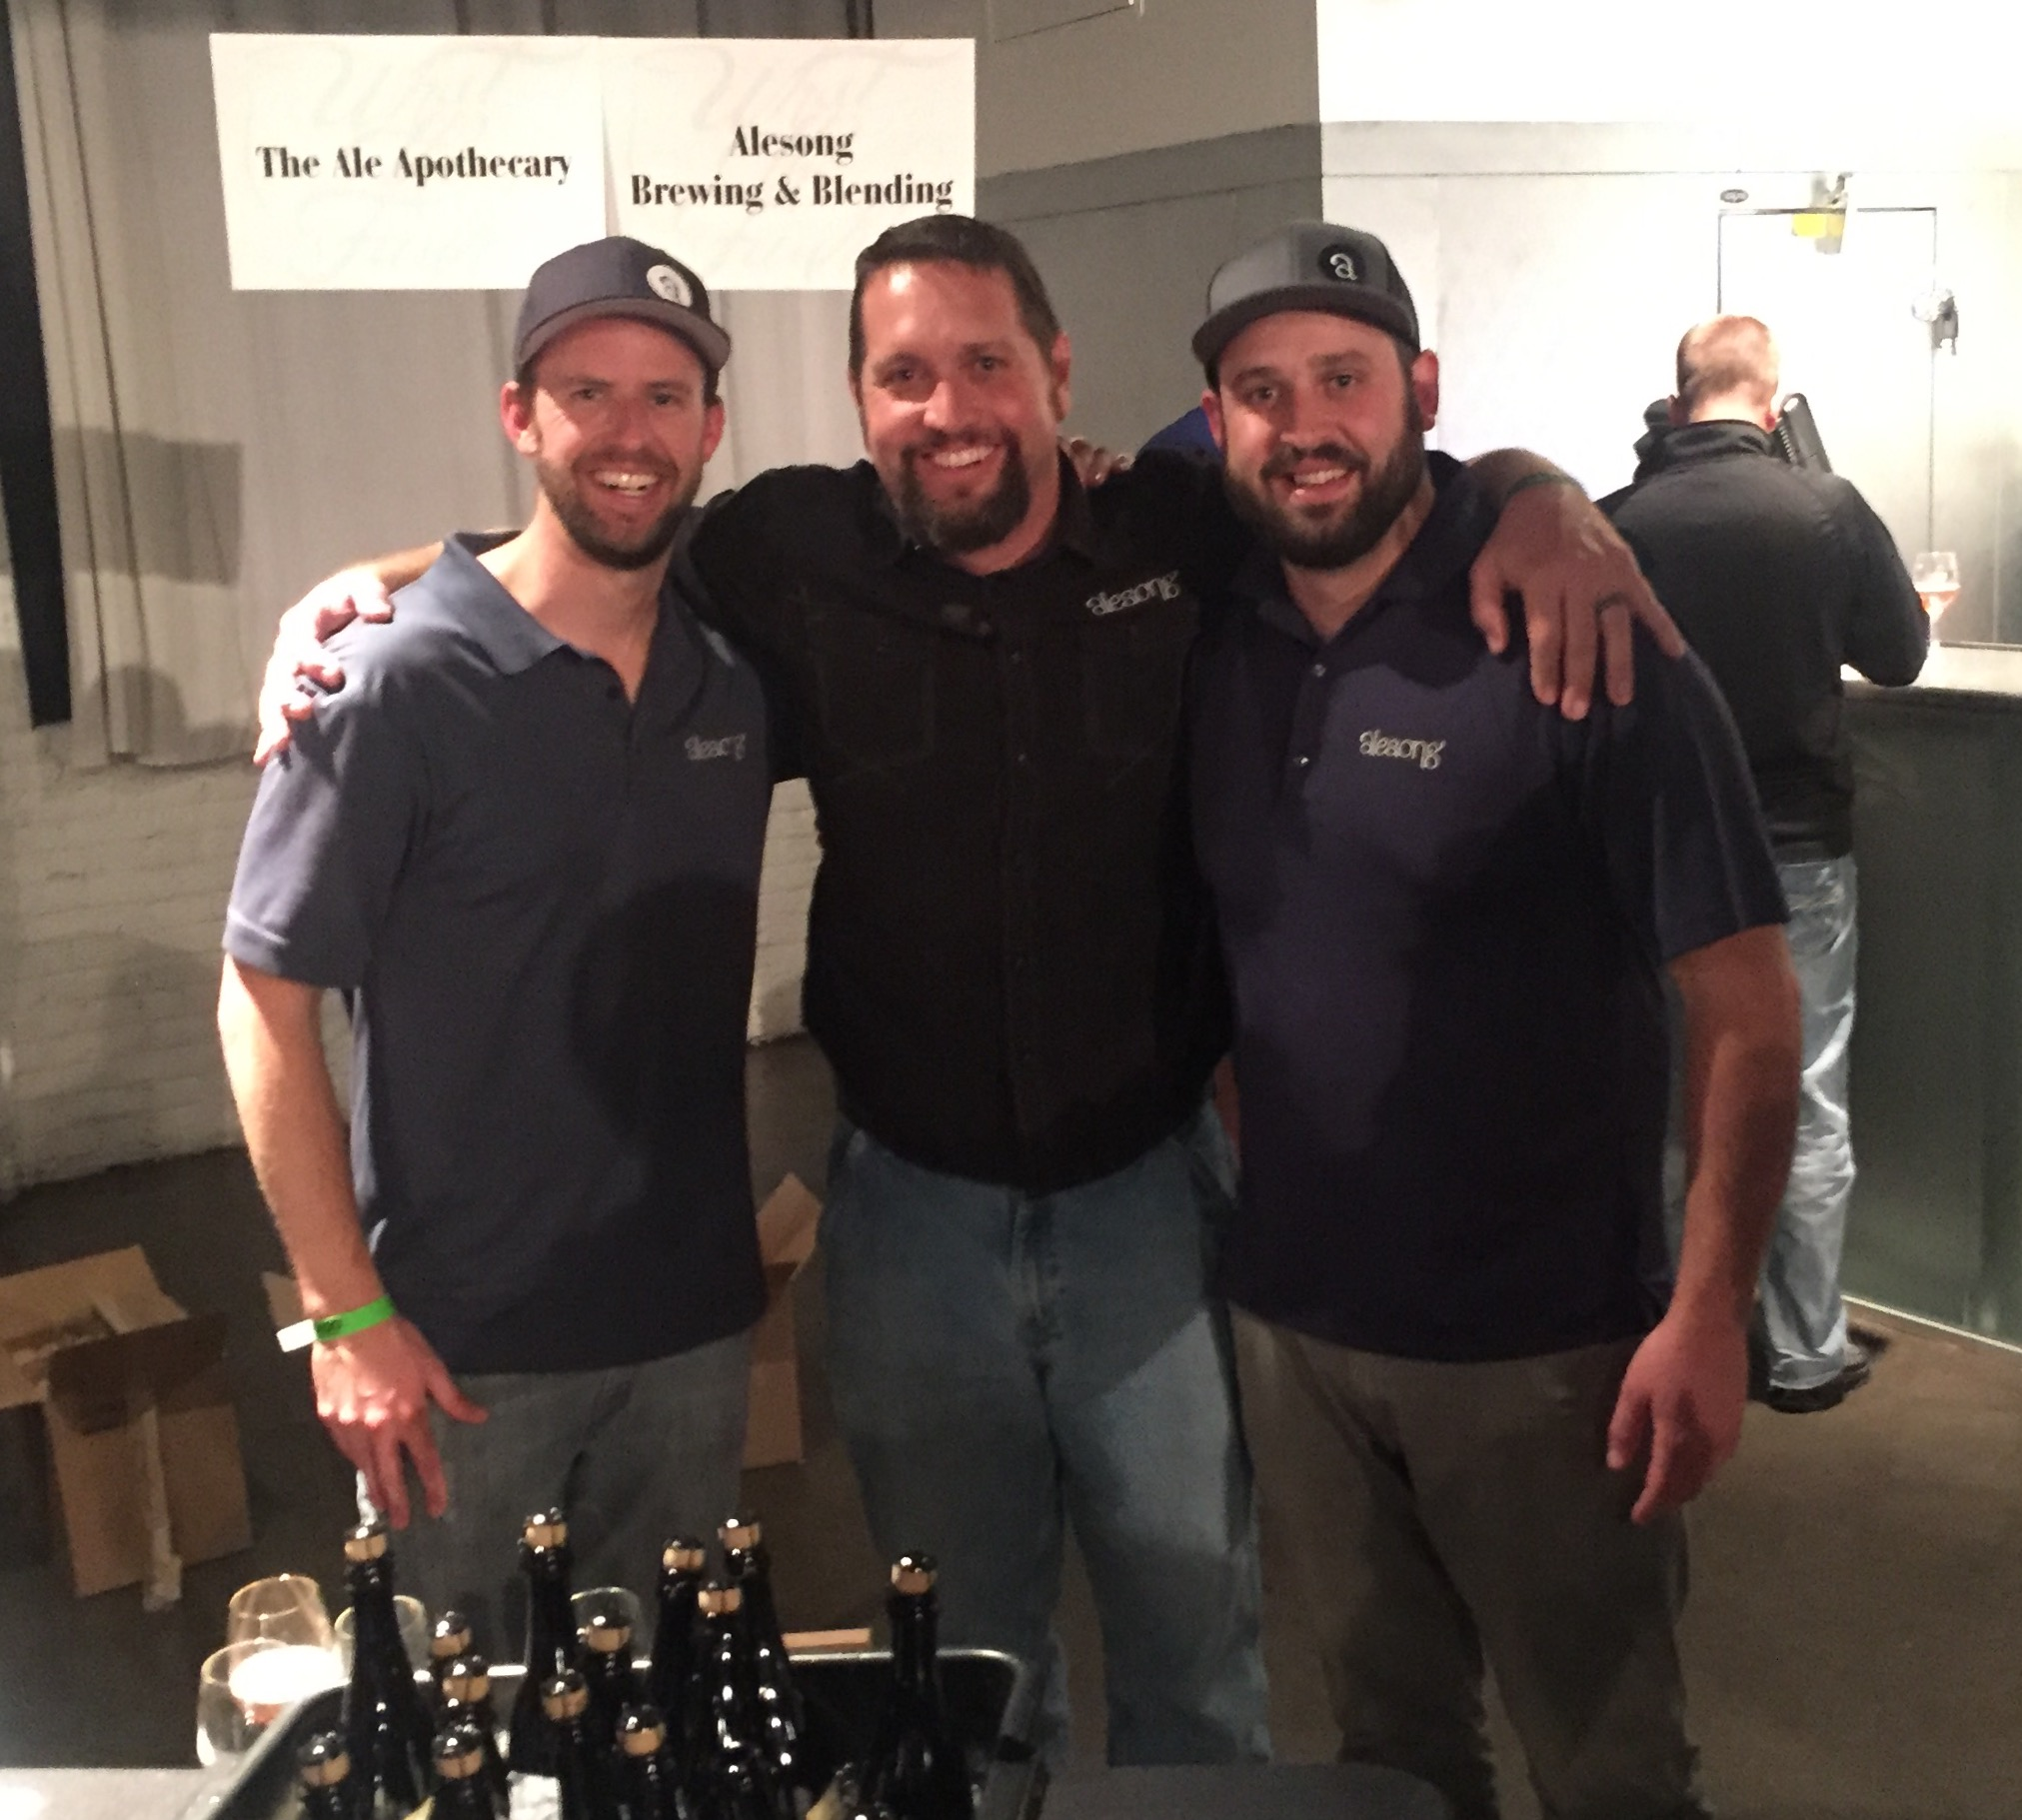 Pouring at What the Funk next to our friends from the Ale Apothecary! Great start to the week!